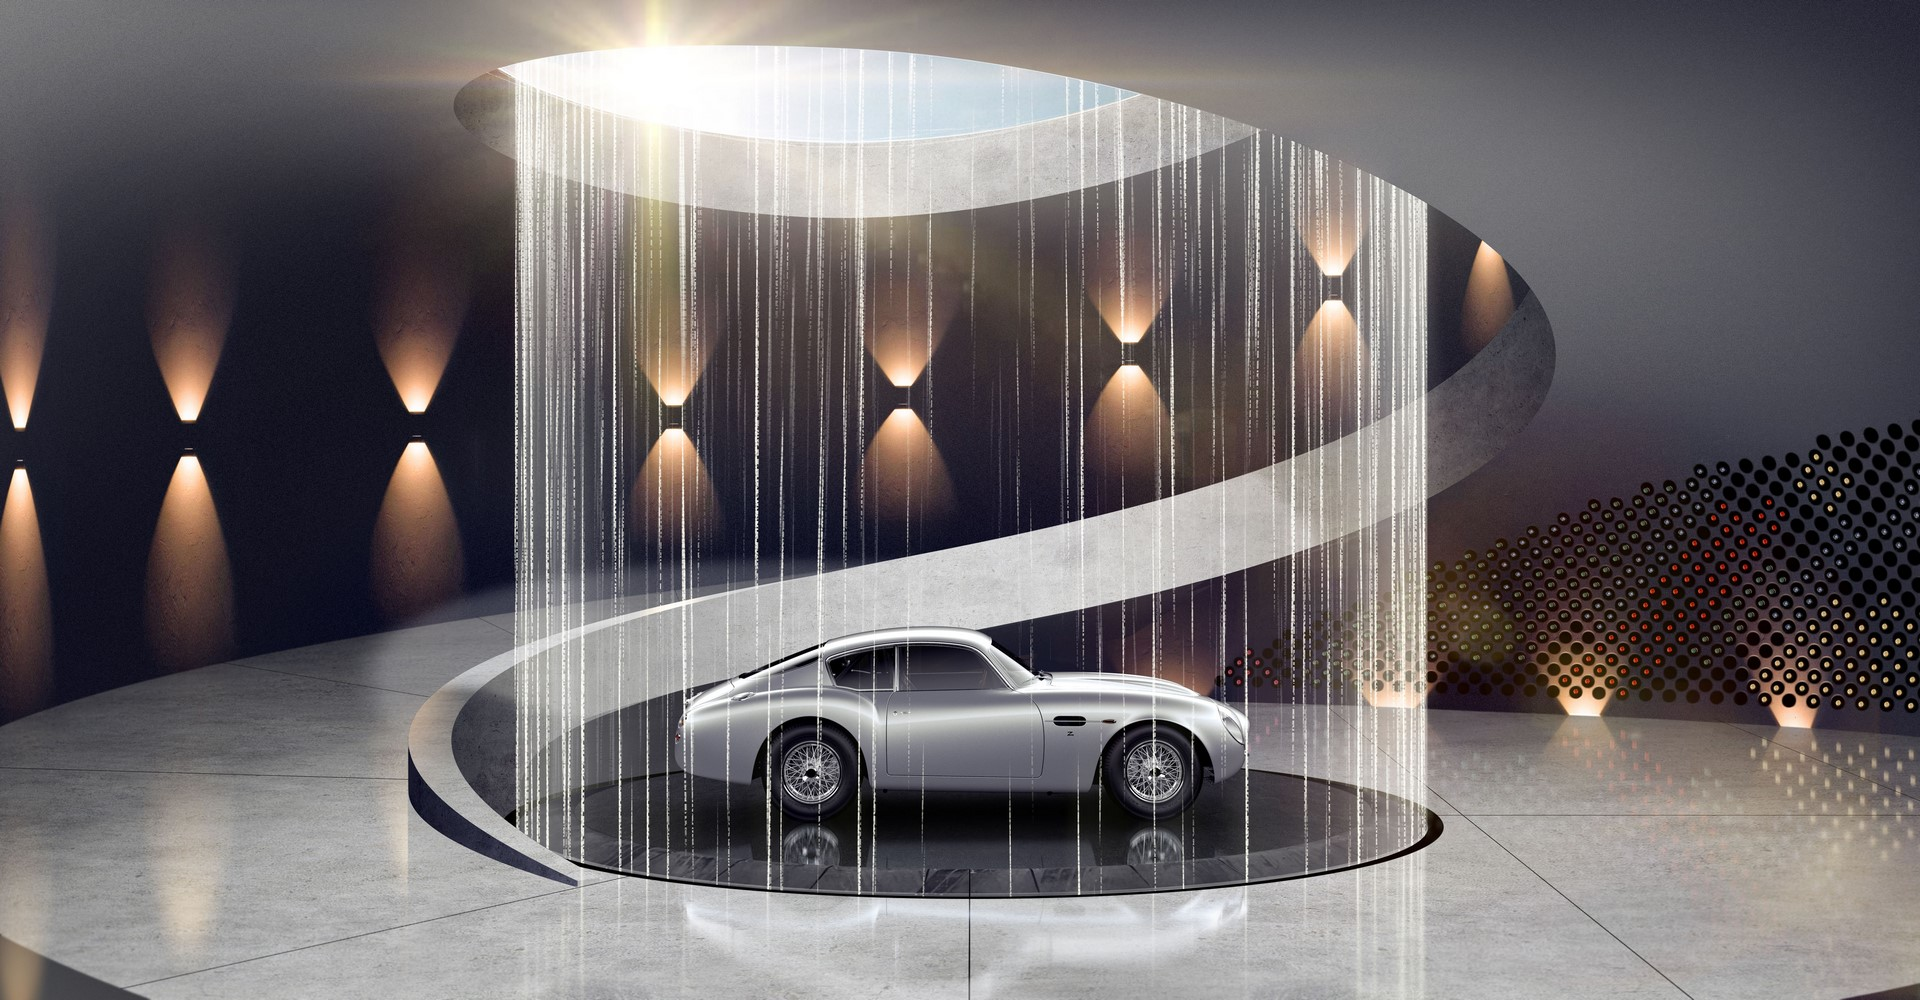 Aston-Martin-Automotive-parking-Galleries-and-Lairs-revealed-at-Pebble-Beach_01-9